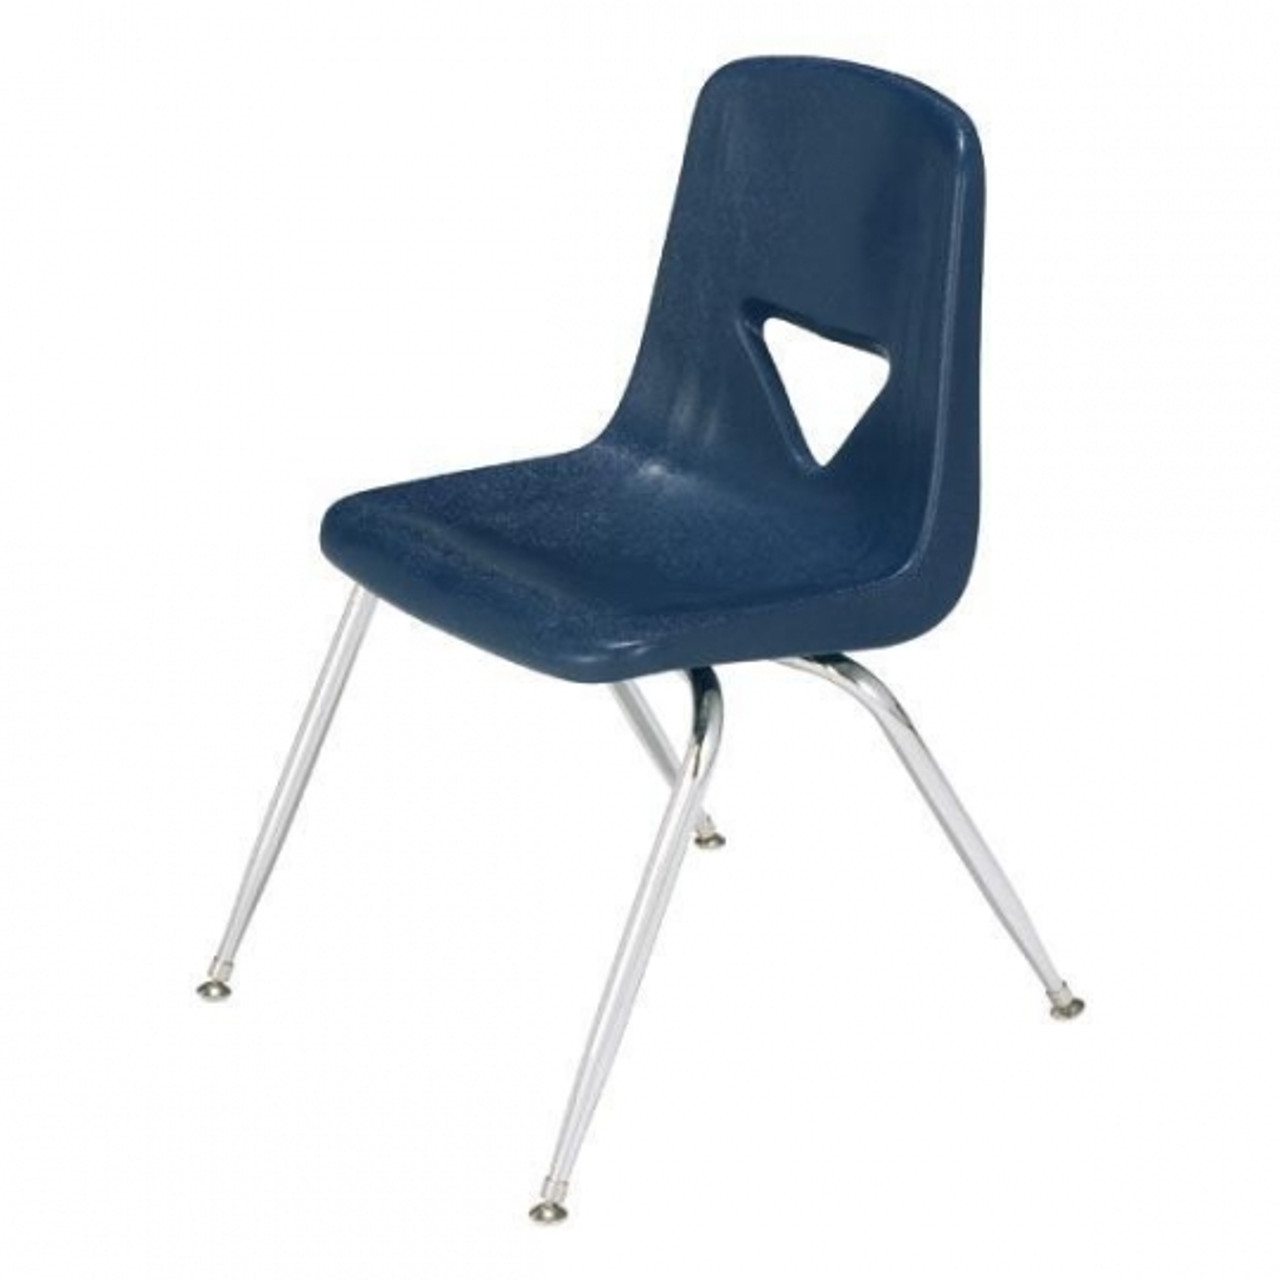 School Chairs L Classroom Chairs L Student Chairs L Classroom Furniture Scholar Craft Sc123 Polypropylene Four Leg School Stack Chair 13 5 Inch Seat Height